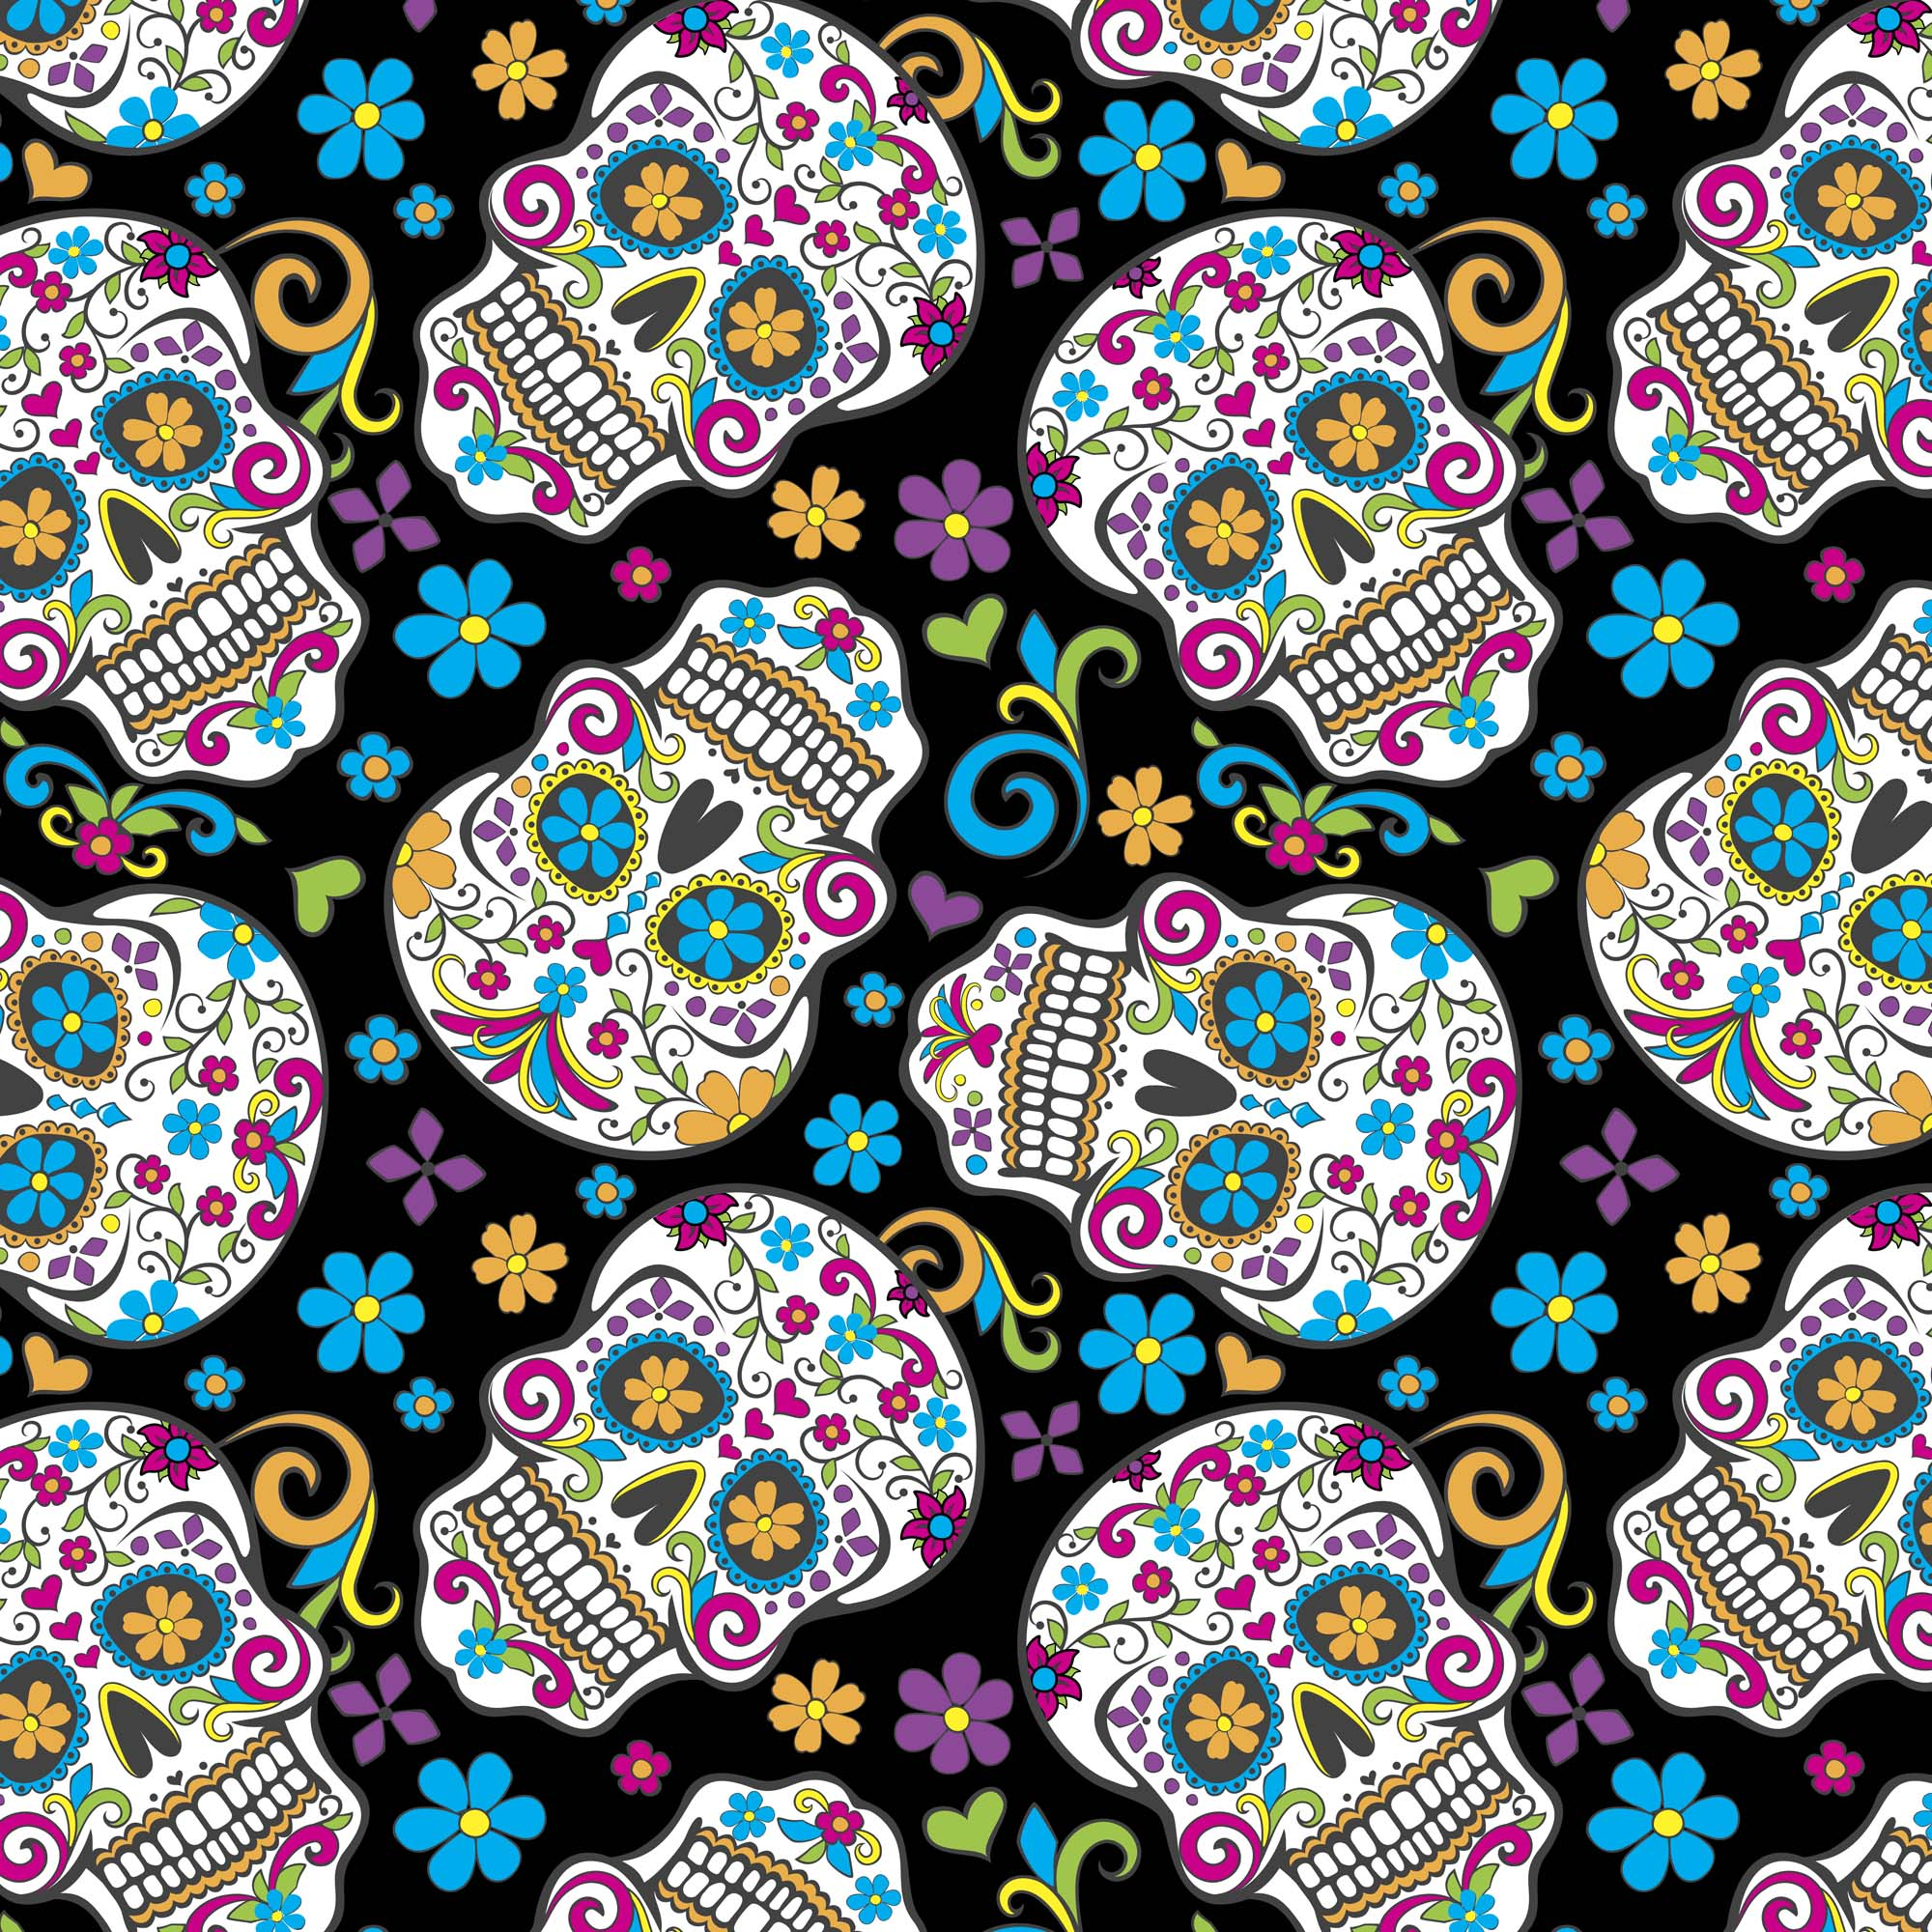 David Textiles Anti-pill Fleece Precut Fabric Folkloric Skulls 1.5 Yds X 60 Inches